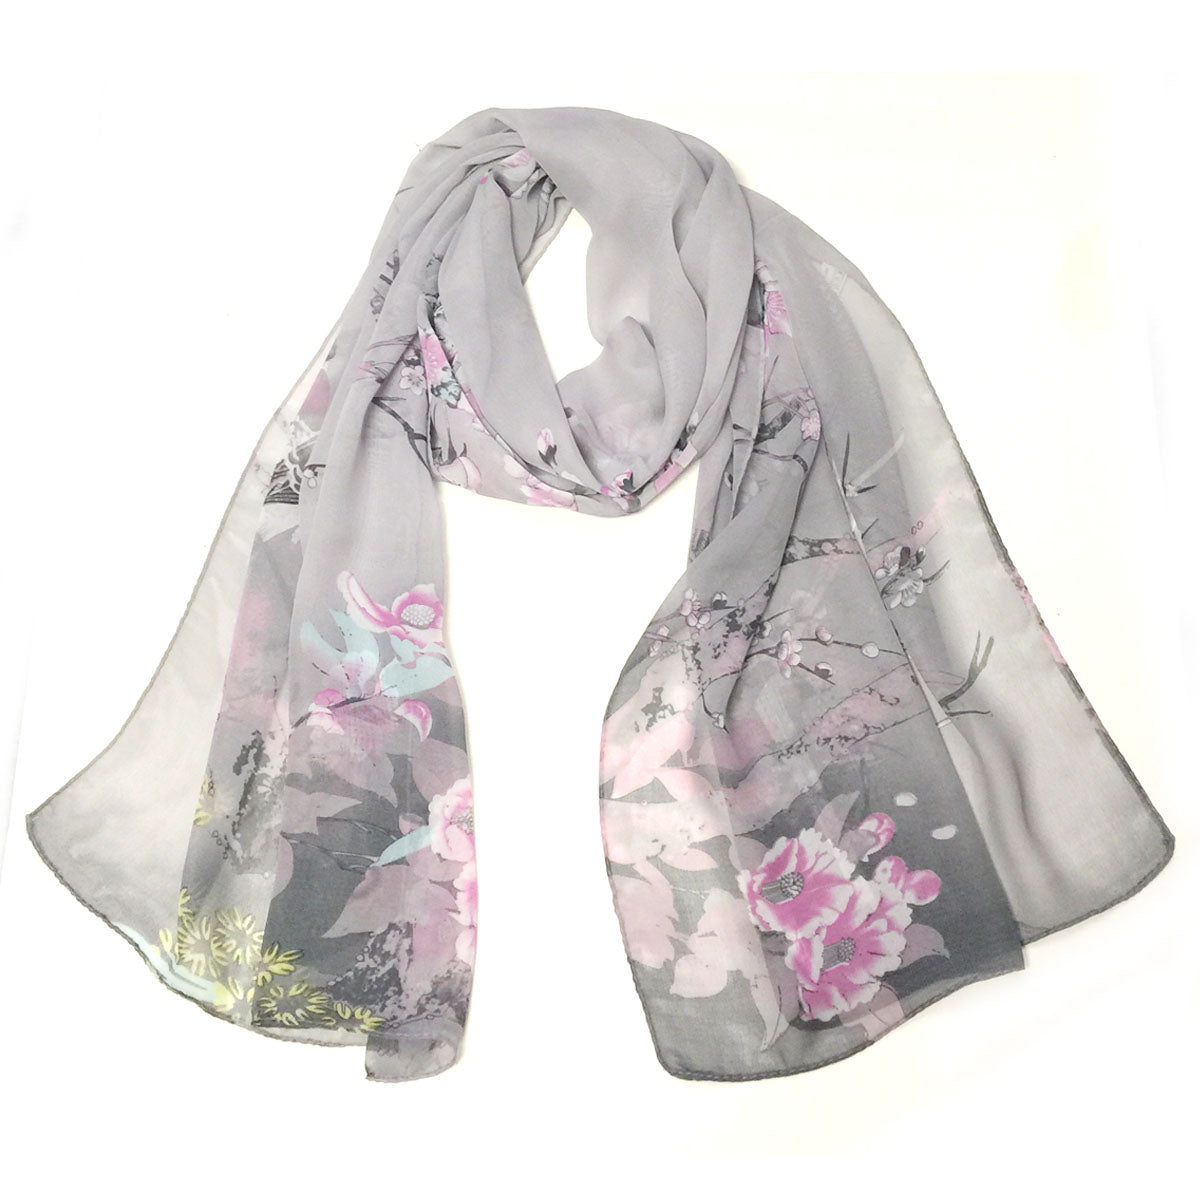 Wrapables Floral Bird Print Polyester and Silk Oblong Scarf, Twilight Dusk